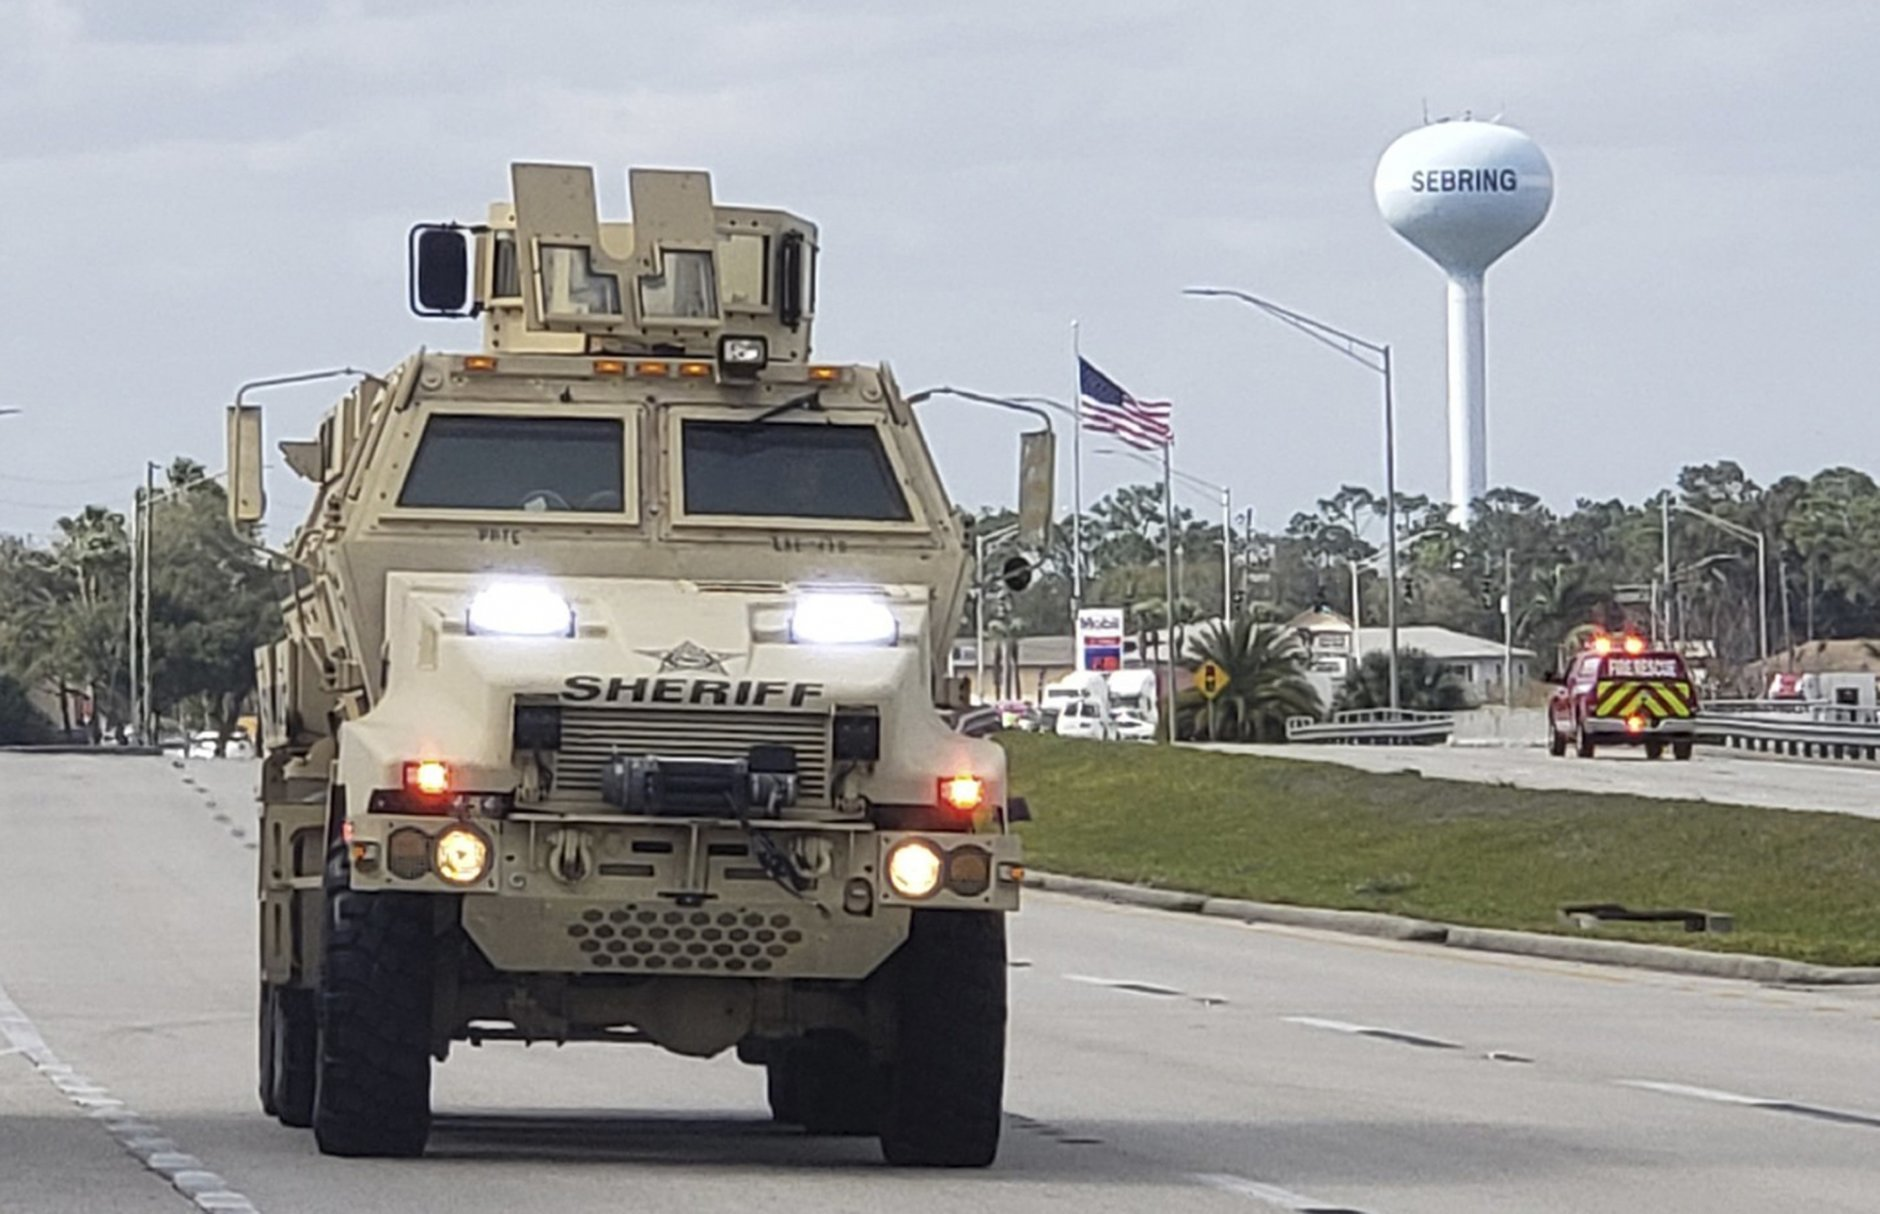 A sheriff's department armored vehicle arrives at a SunTrust Bank branch, Wednesday, Jan. 23, 2019, in Sebring, Fla. Authorities say they've arrested a man who fired shots inside the Florida bank. (The News Sun via AP)